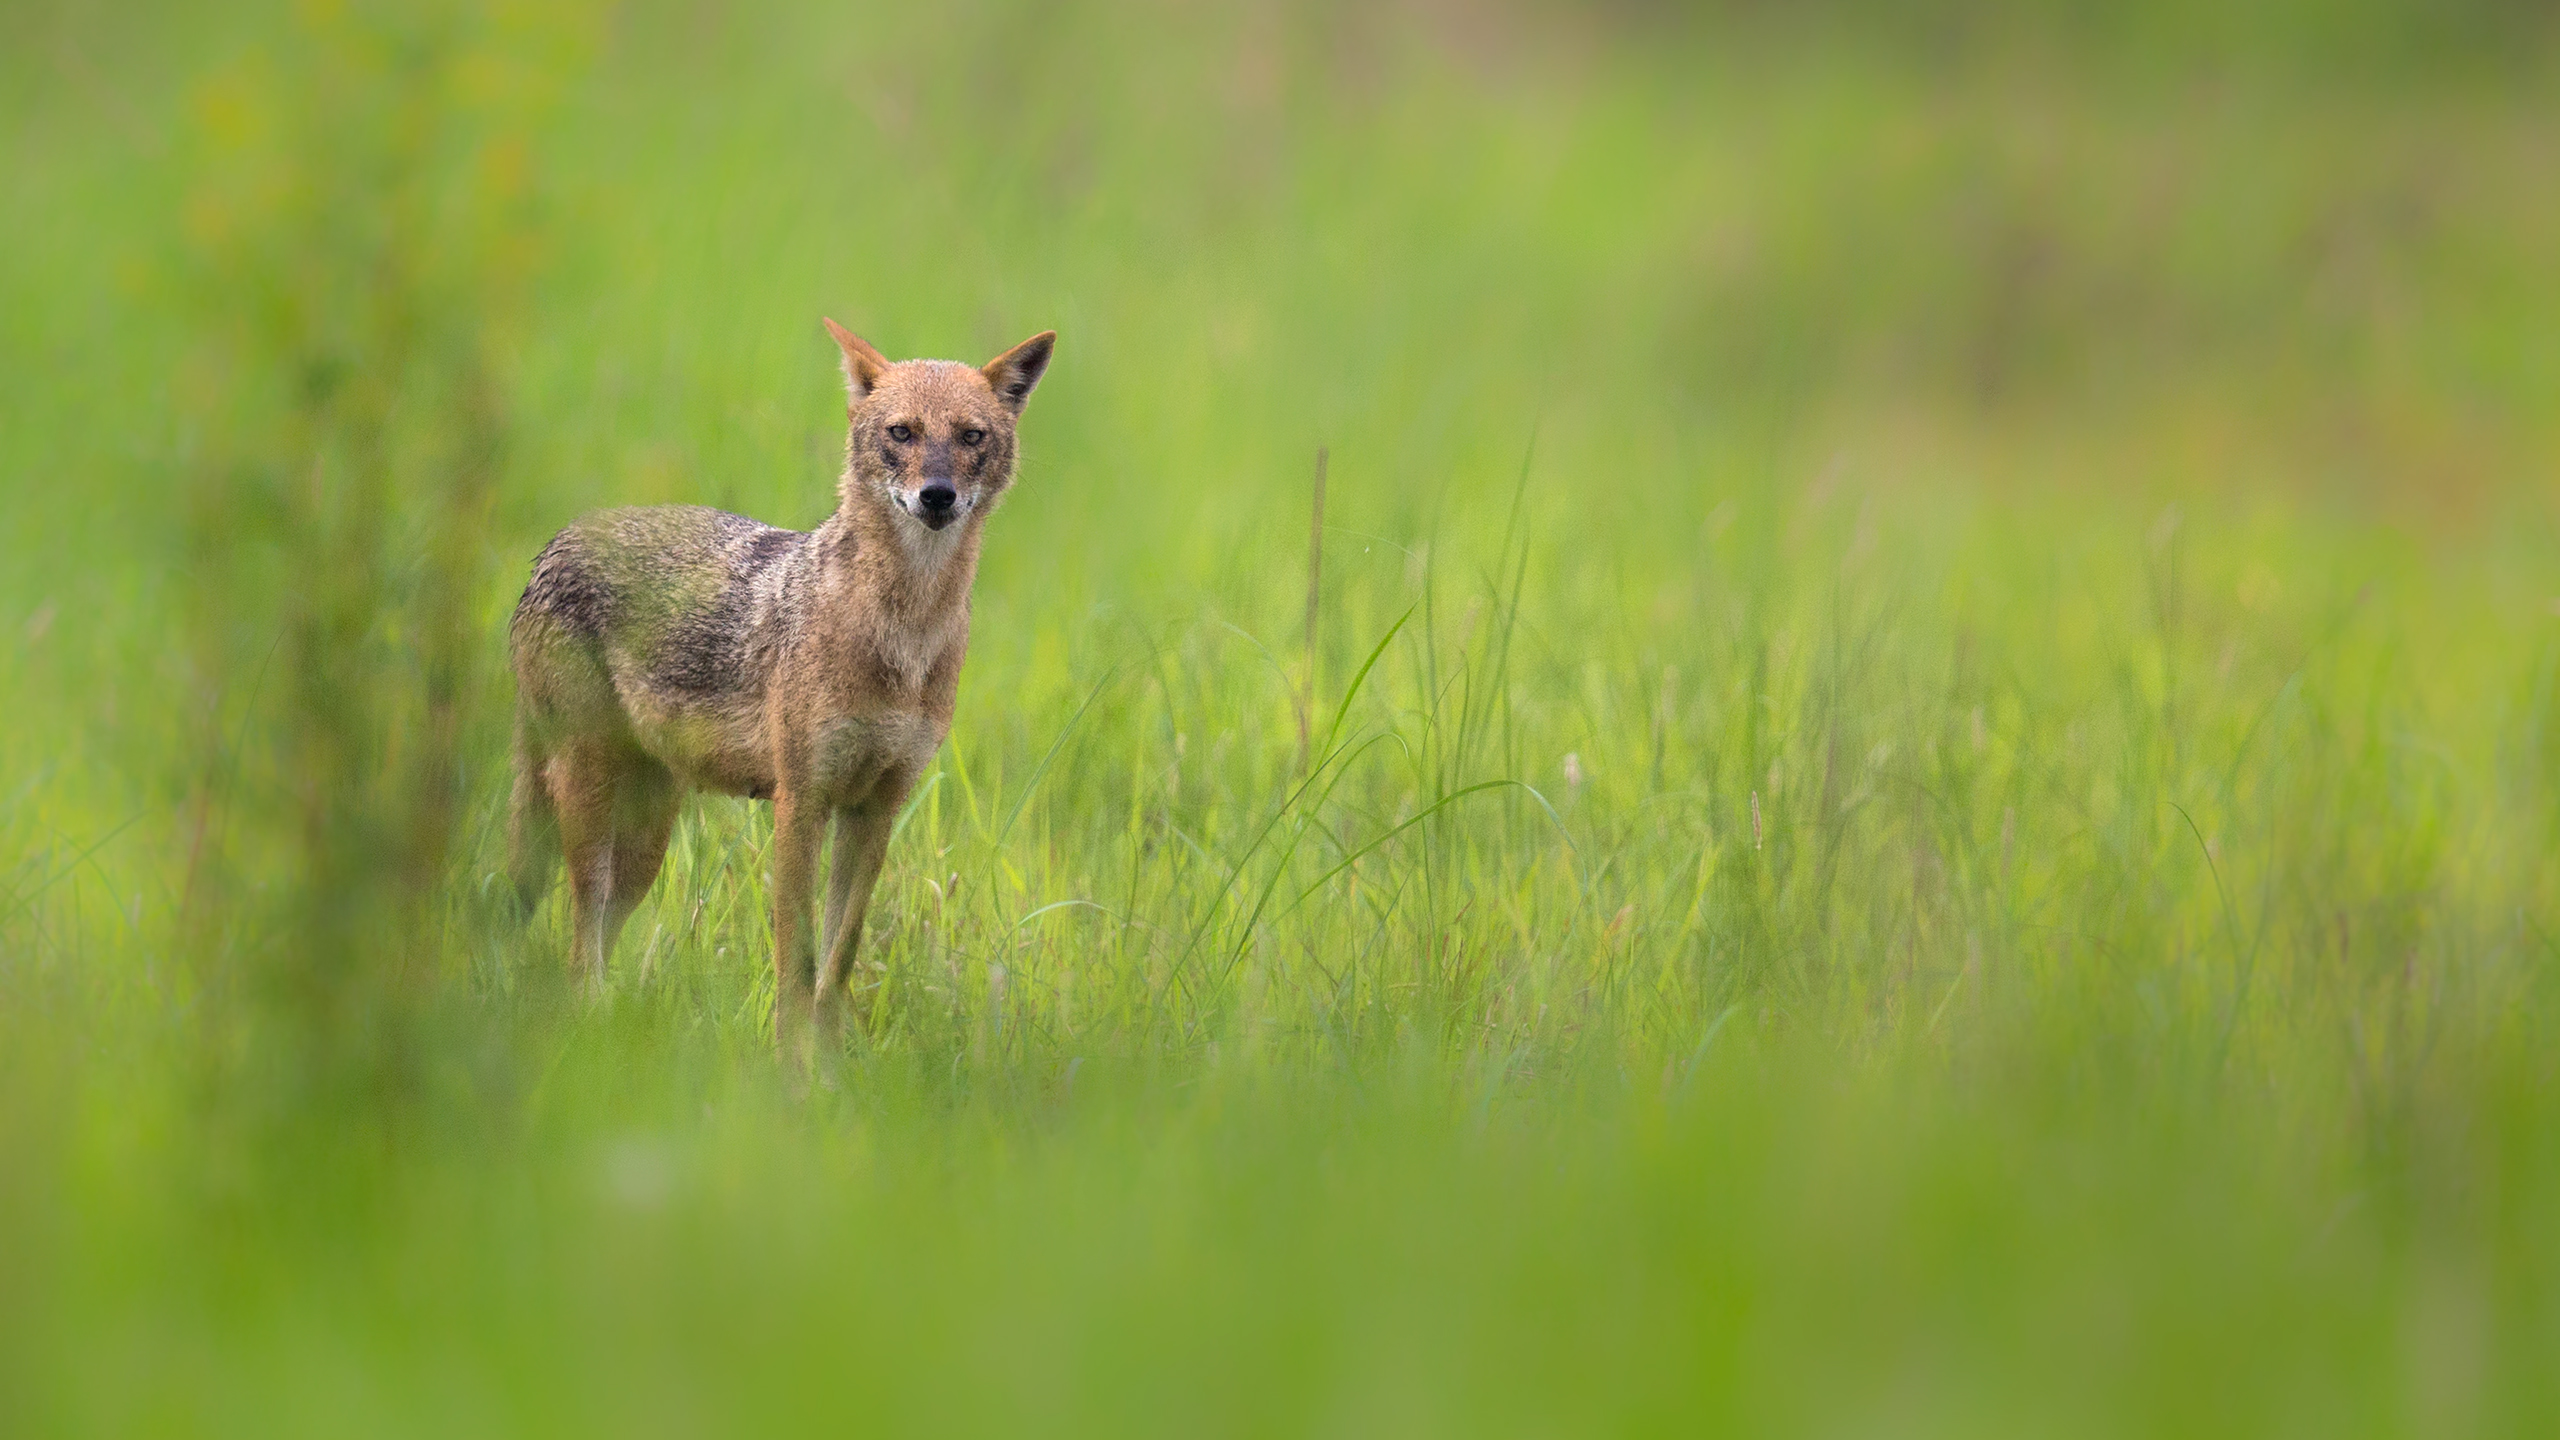 Indian Jackal in West Bengal by Arindam Bhattacharya